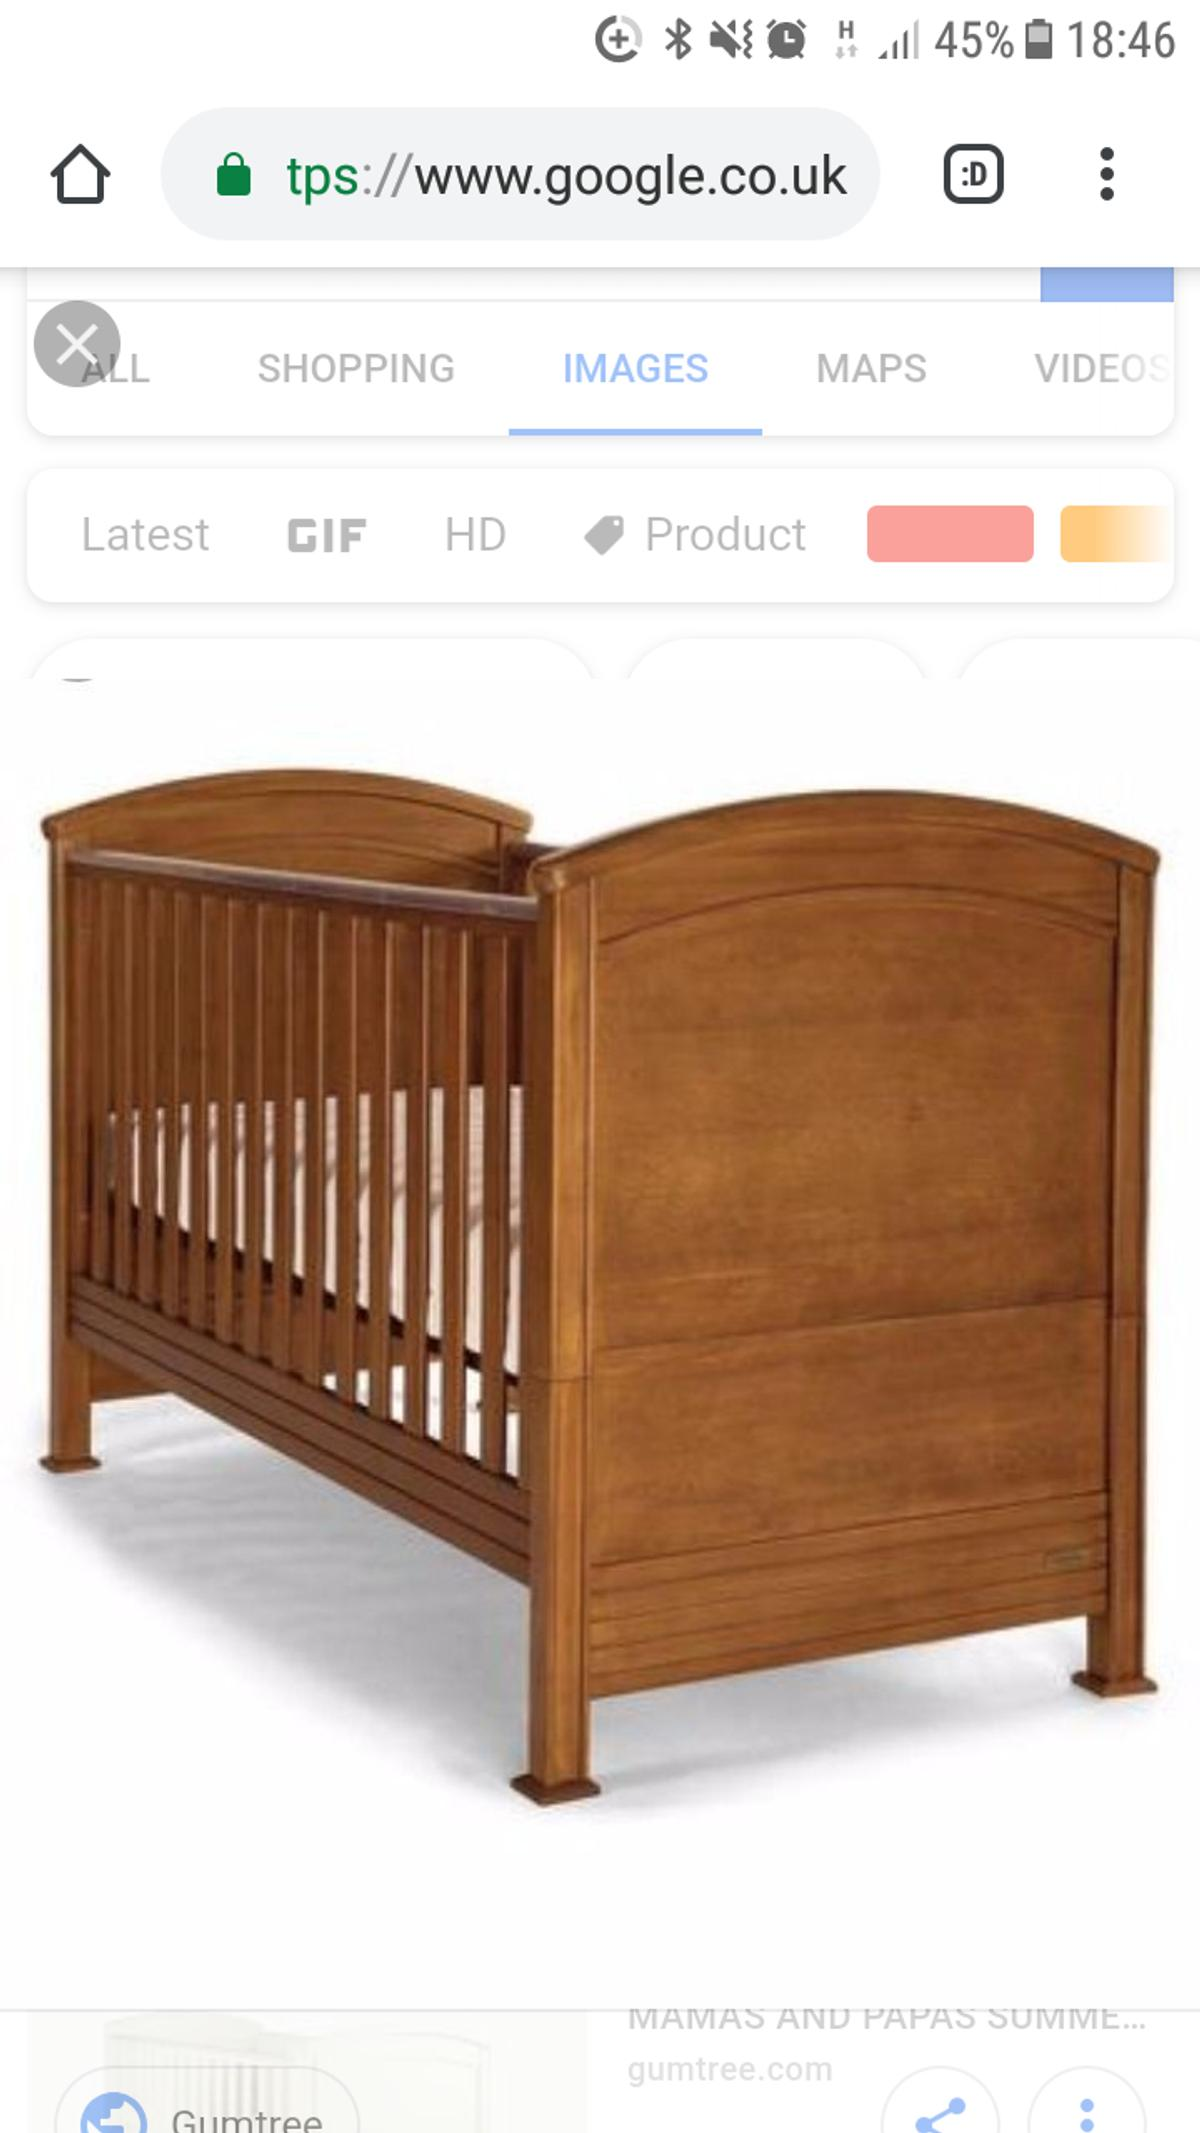 mamas and papas cot bed all screws etc with bed and origjnal assembly instructions. excellent condition